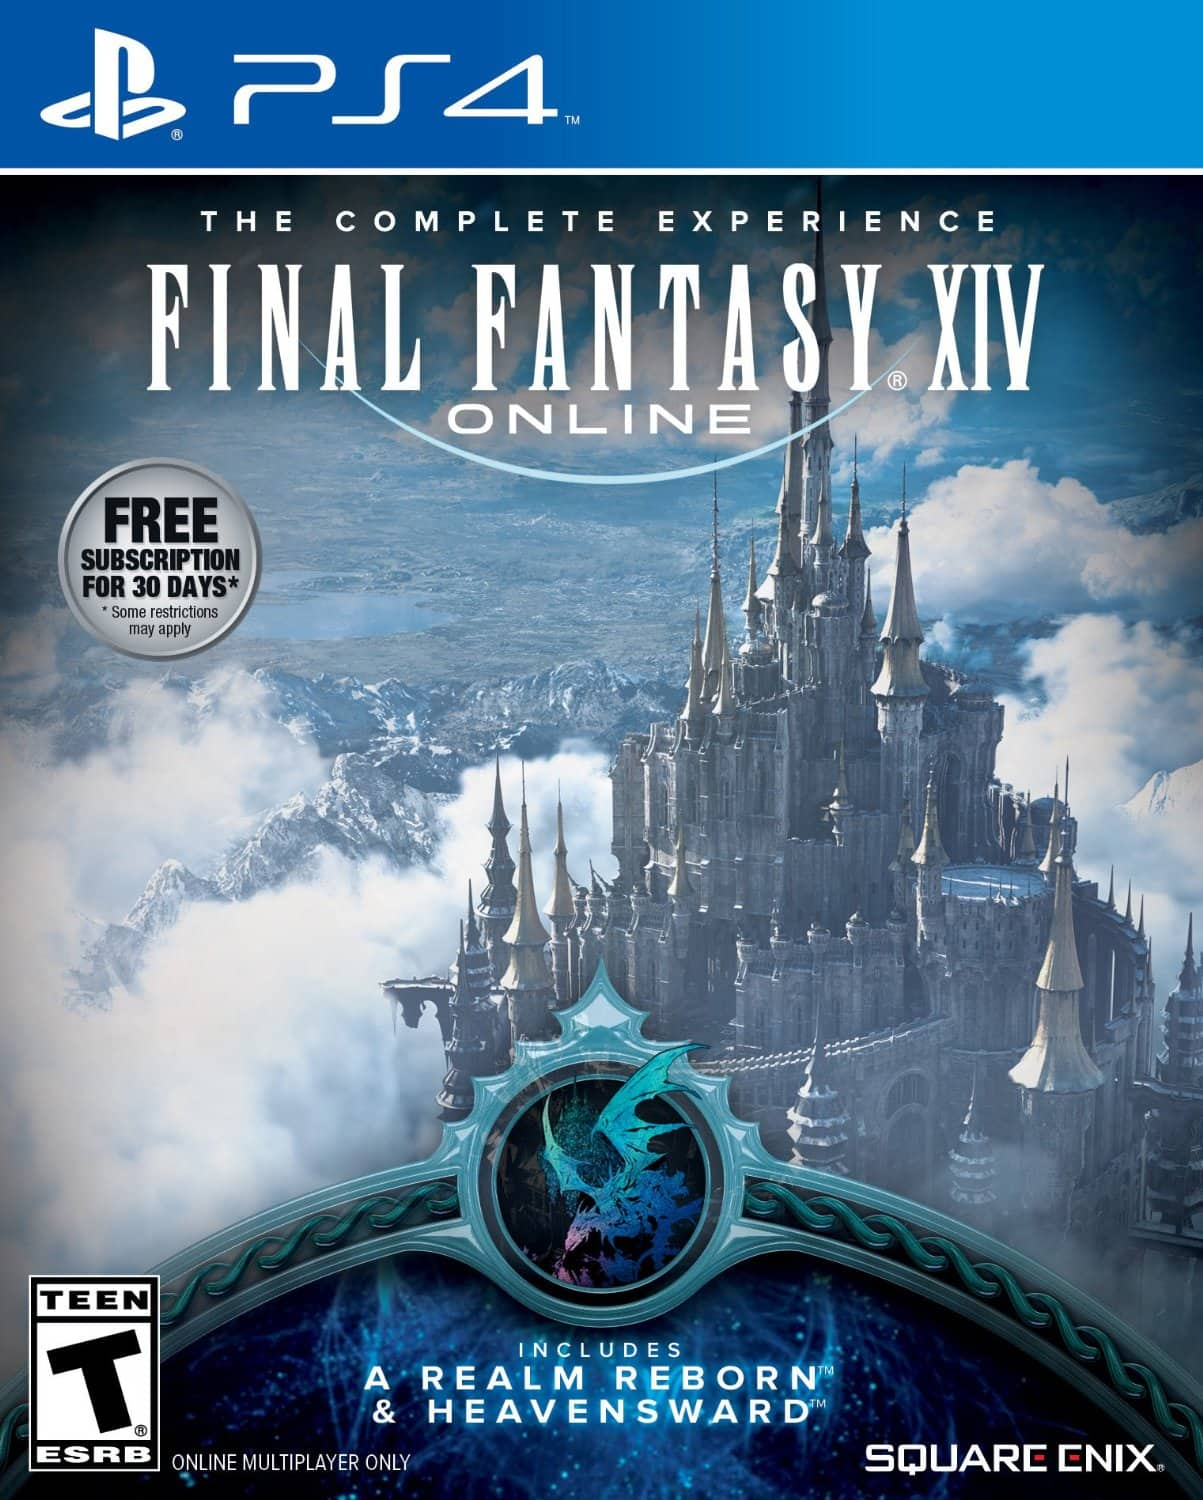 Final Fantasy XIV Online (PS4 or PC Game)  $15